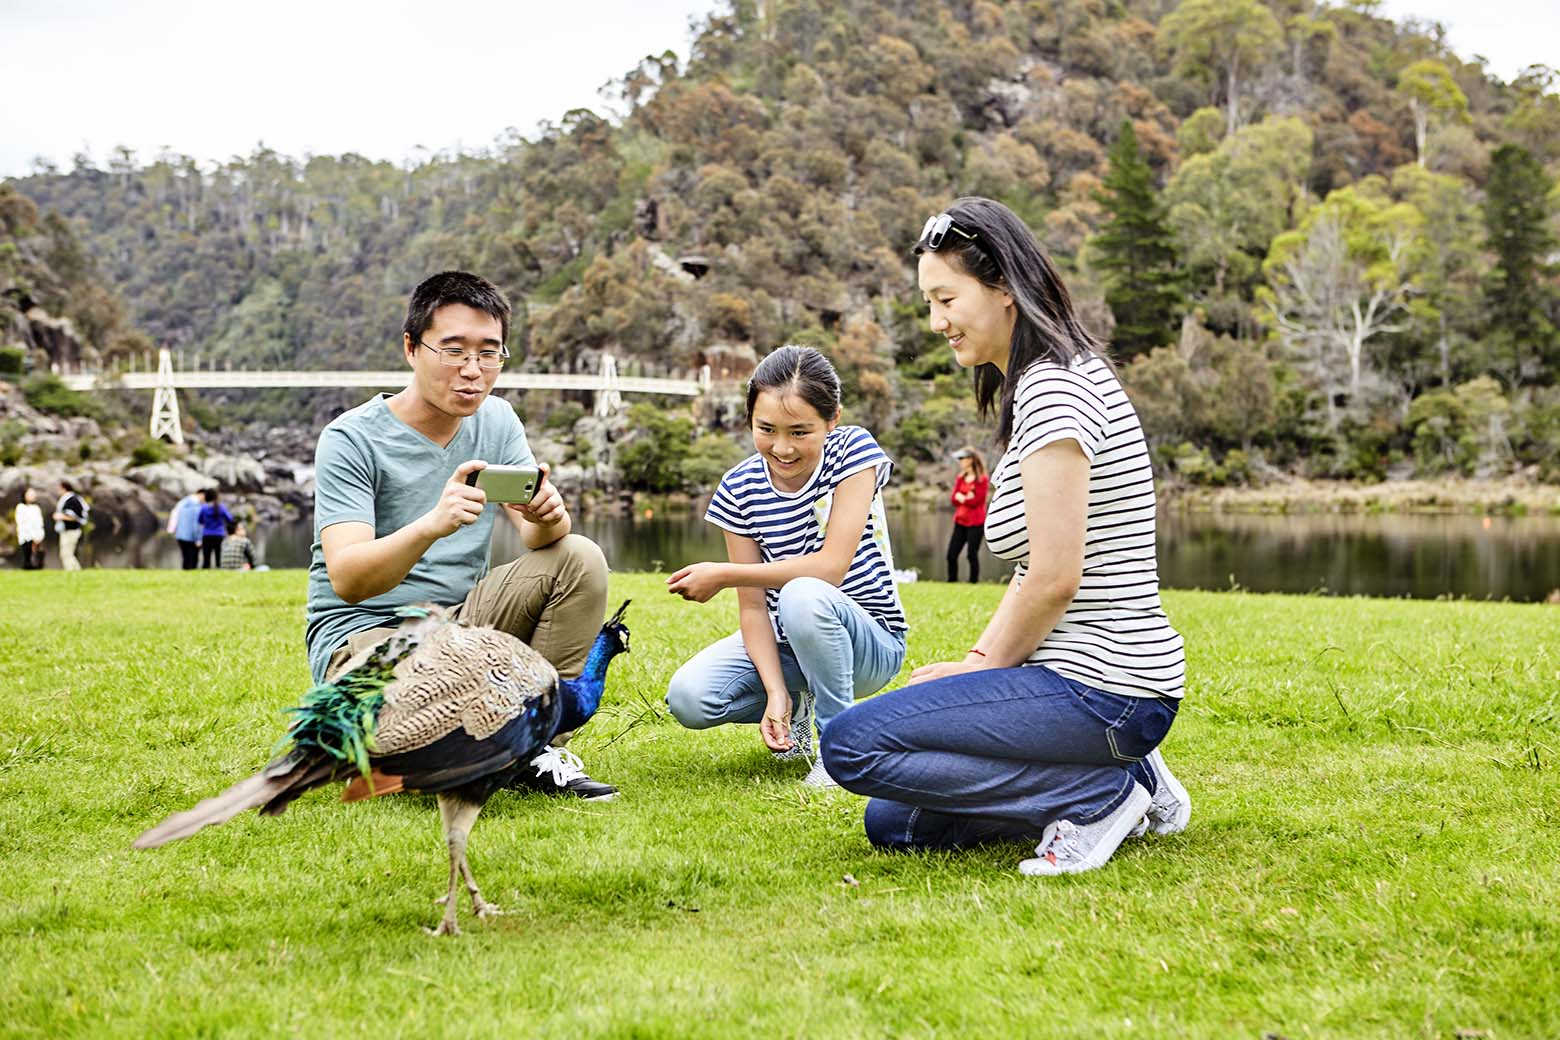 Relax on the grass at Cataract Gorge on your Lap of Tasmania road trip